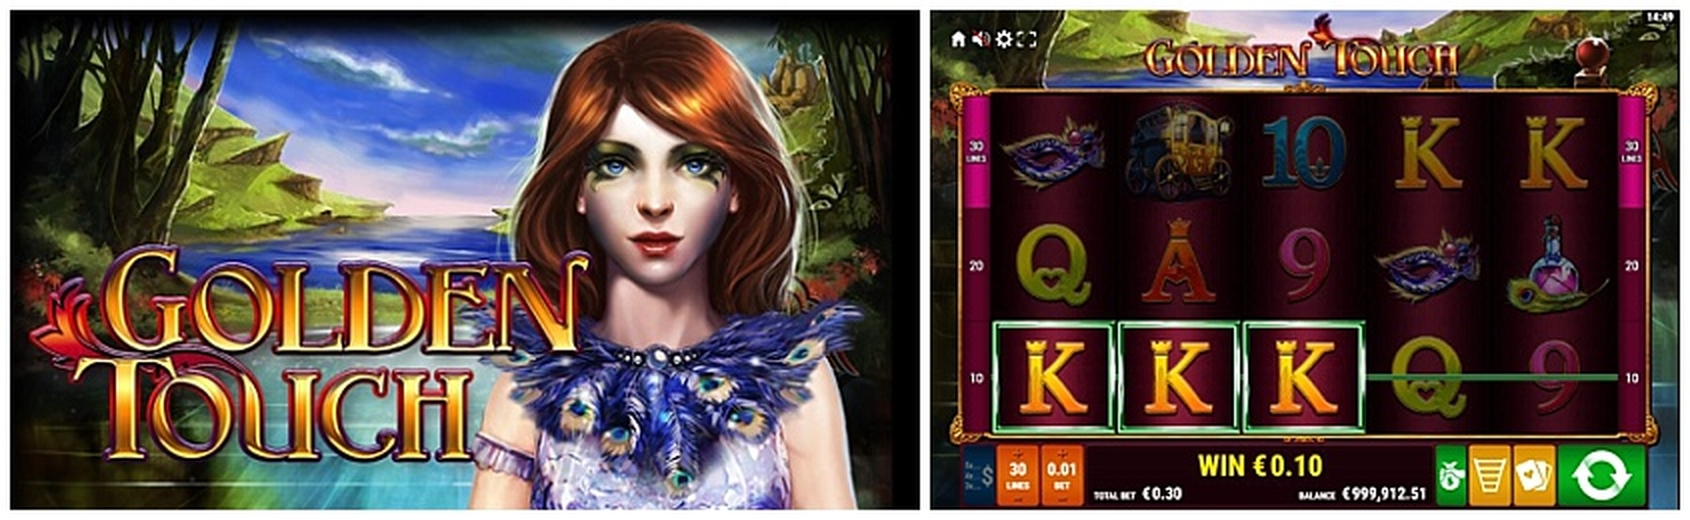 The Golden Touch Online Slot Demo Game by Gamomat